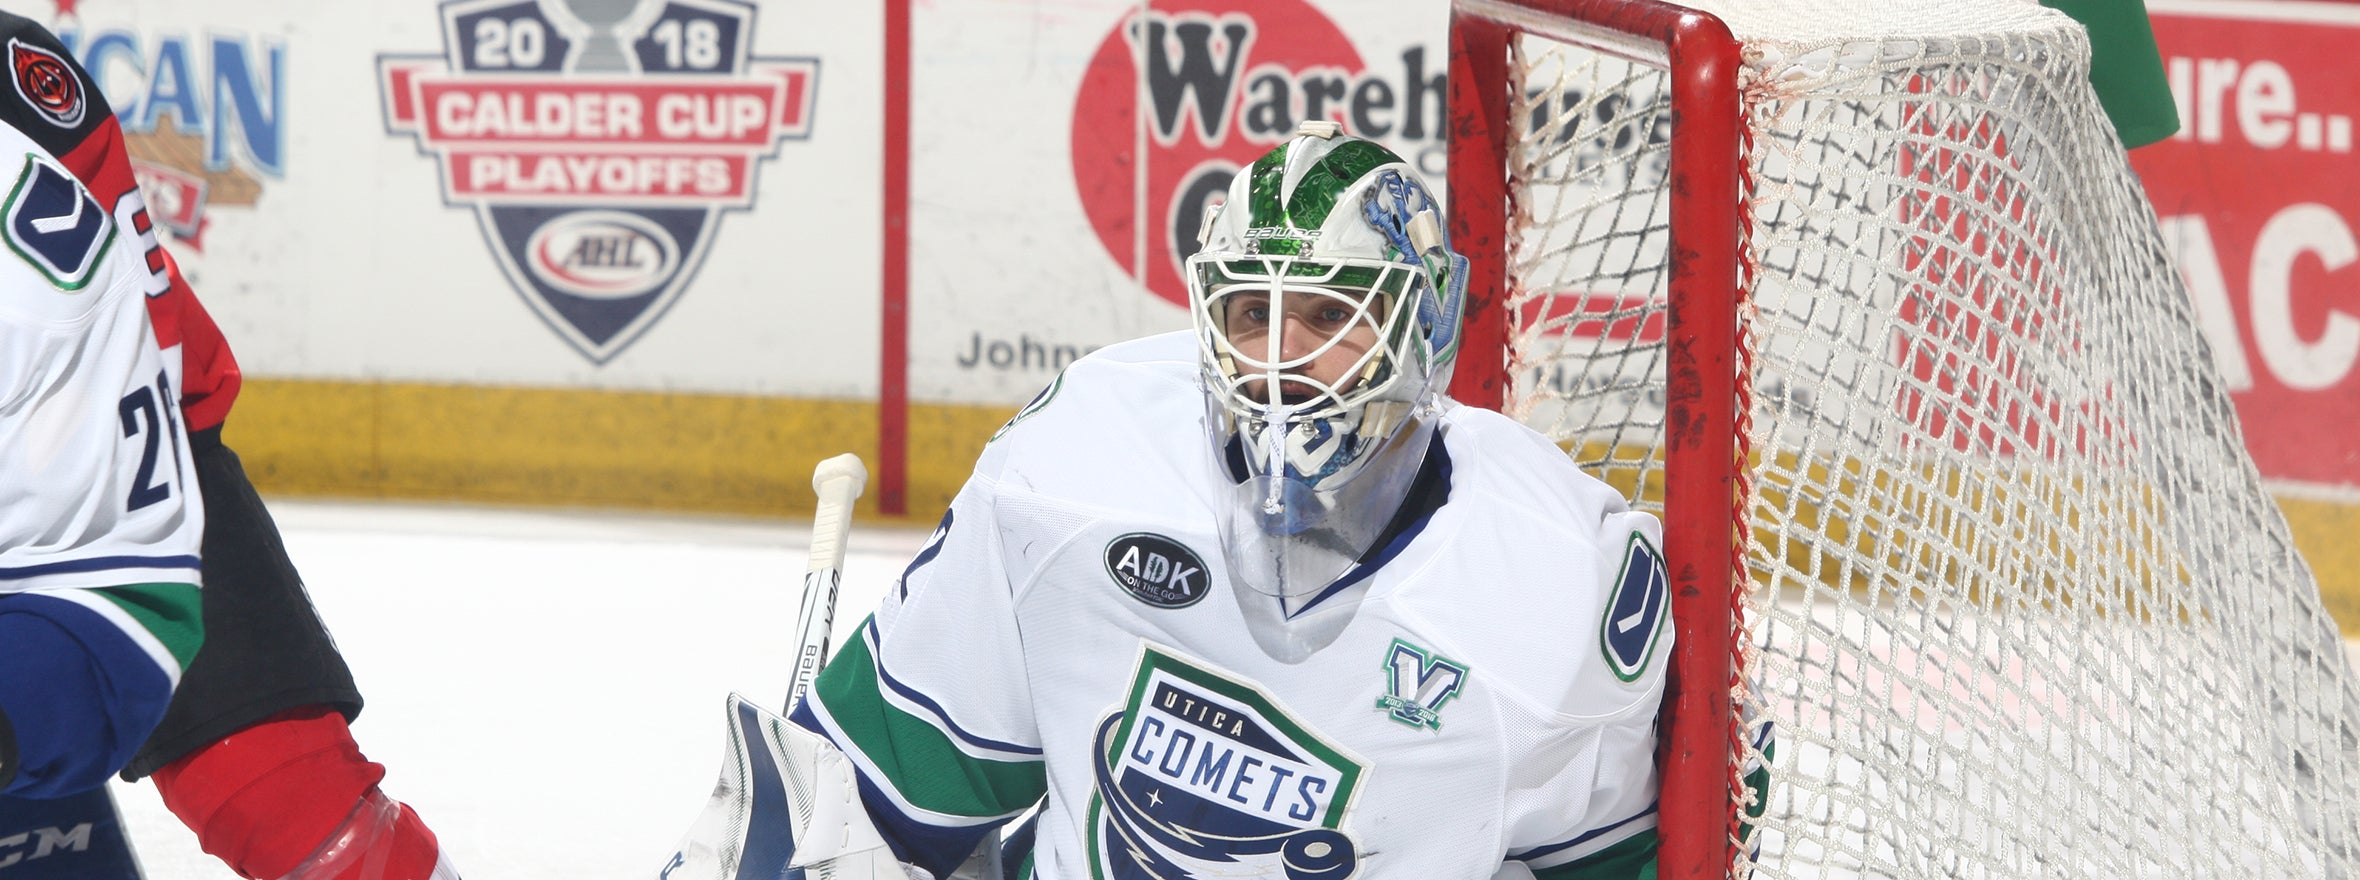 COMETS PUNCH TICKET TO PLAYOFFS